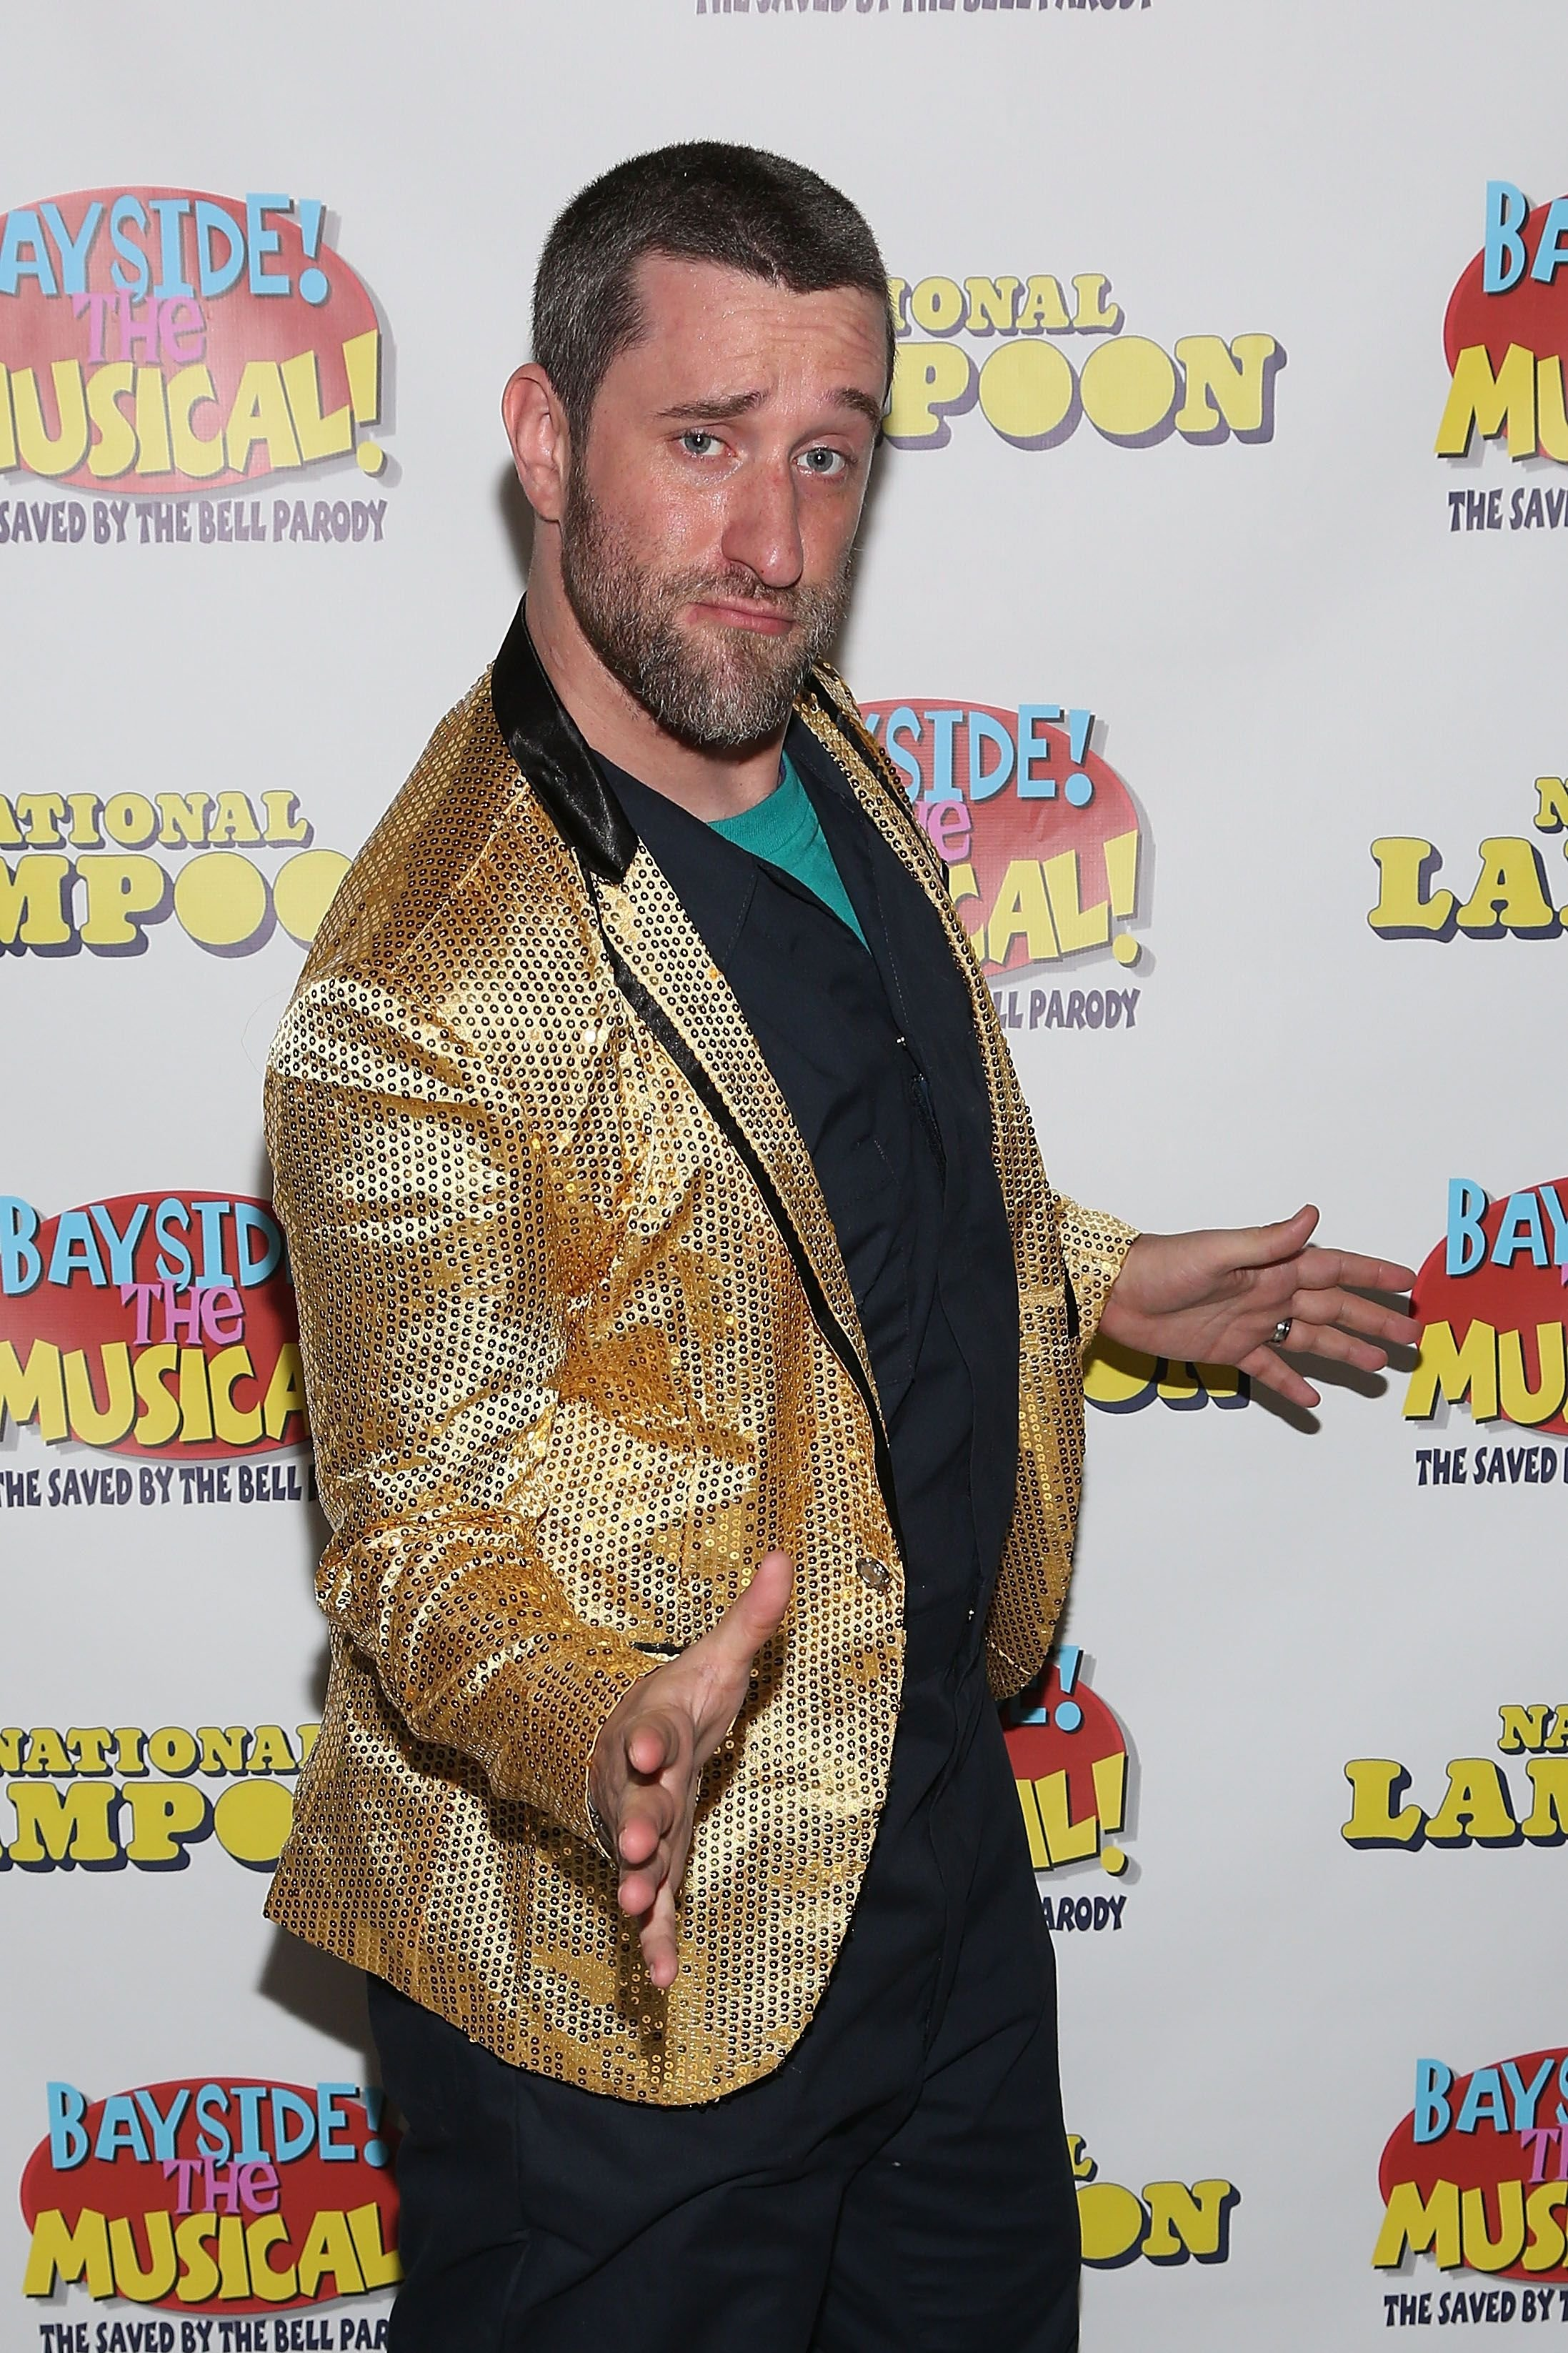 """Dustin Diamond at the opening performance of """"Bayside! The Musical!"""" at Theatre 80 St. Marks on September 11, 2014 